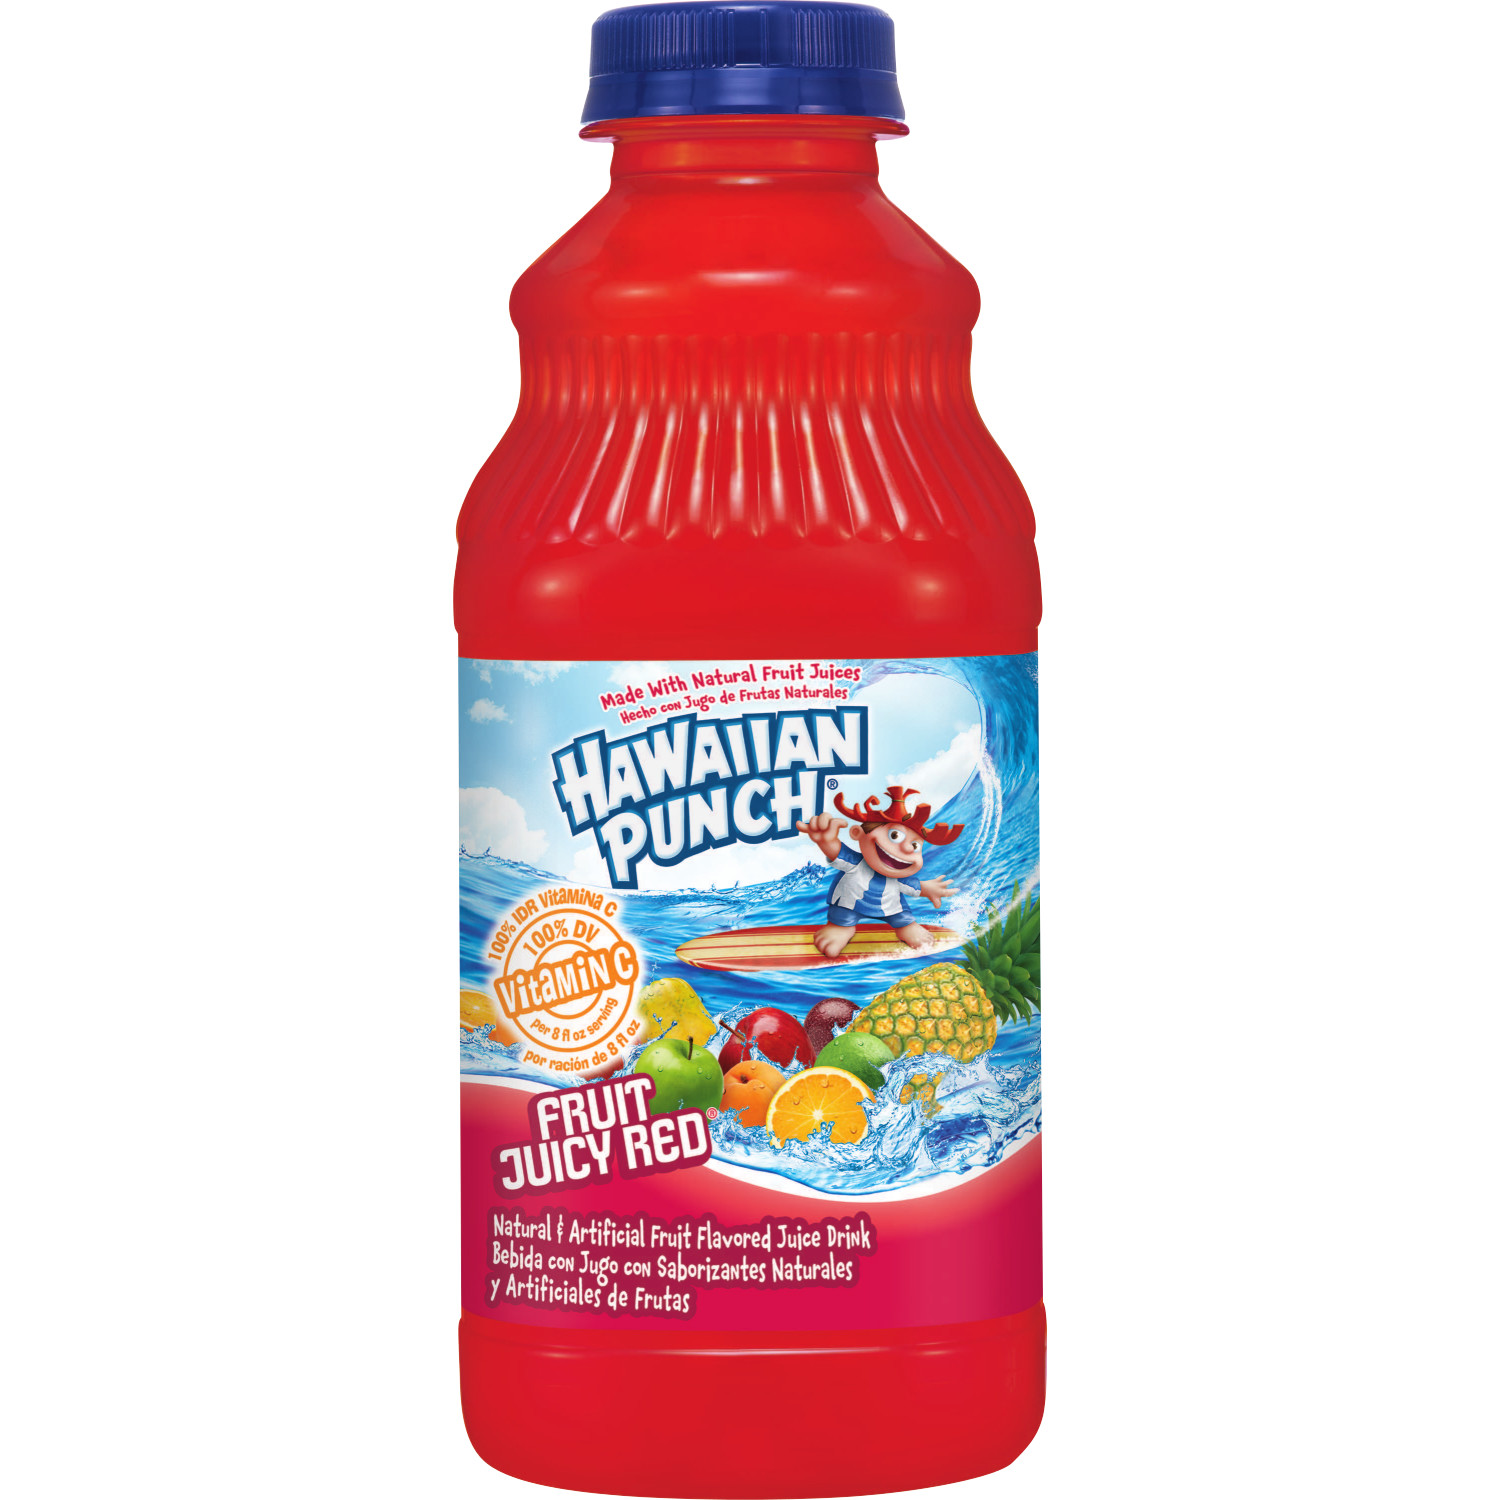 Hawaiian Punch Fruit Juicy Red Drink, 32 Fl. Oz.